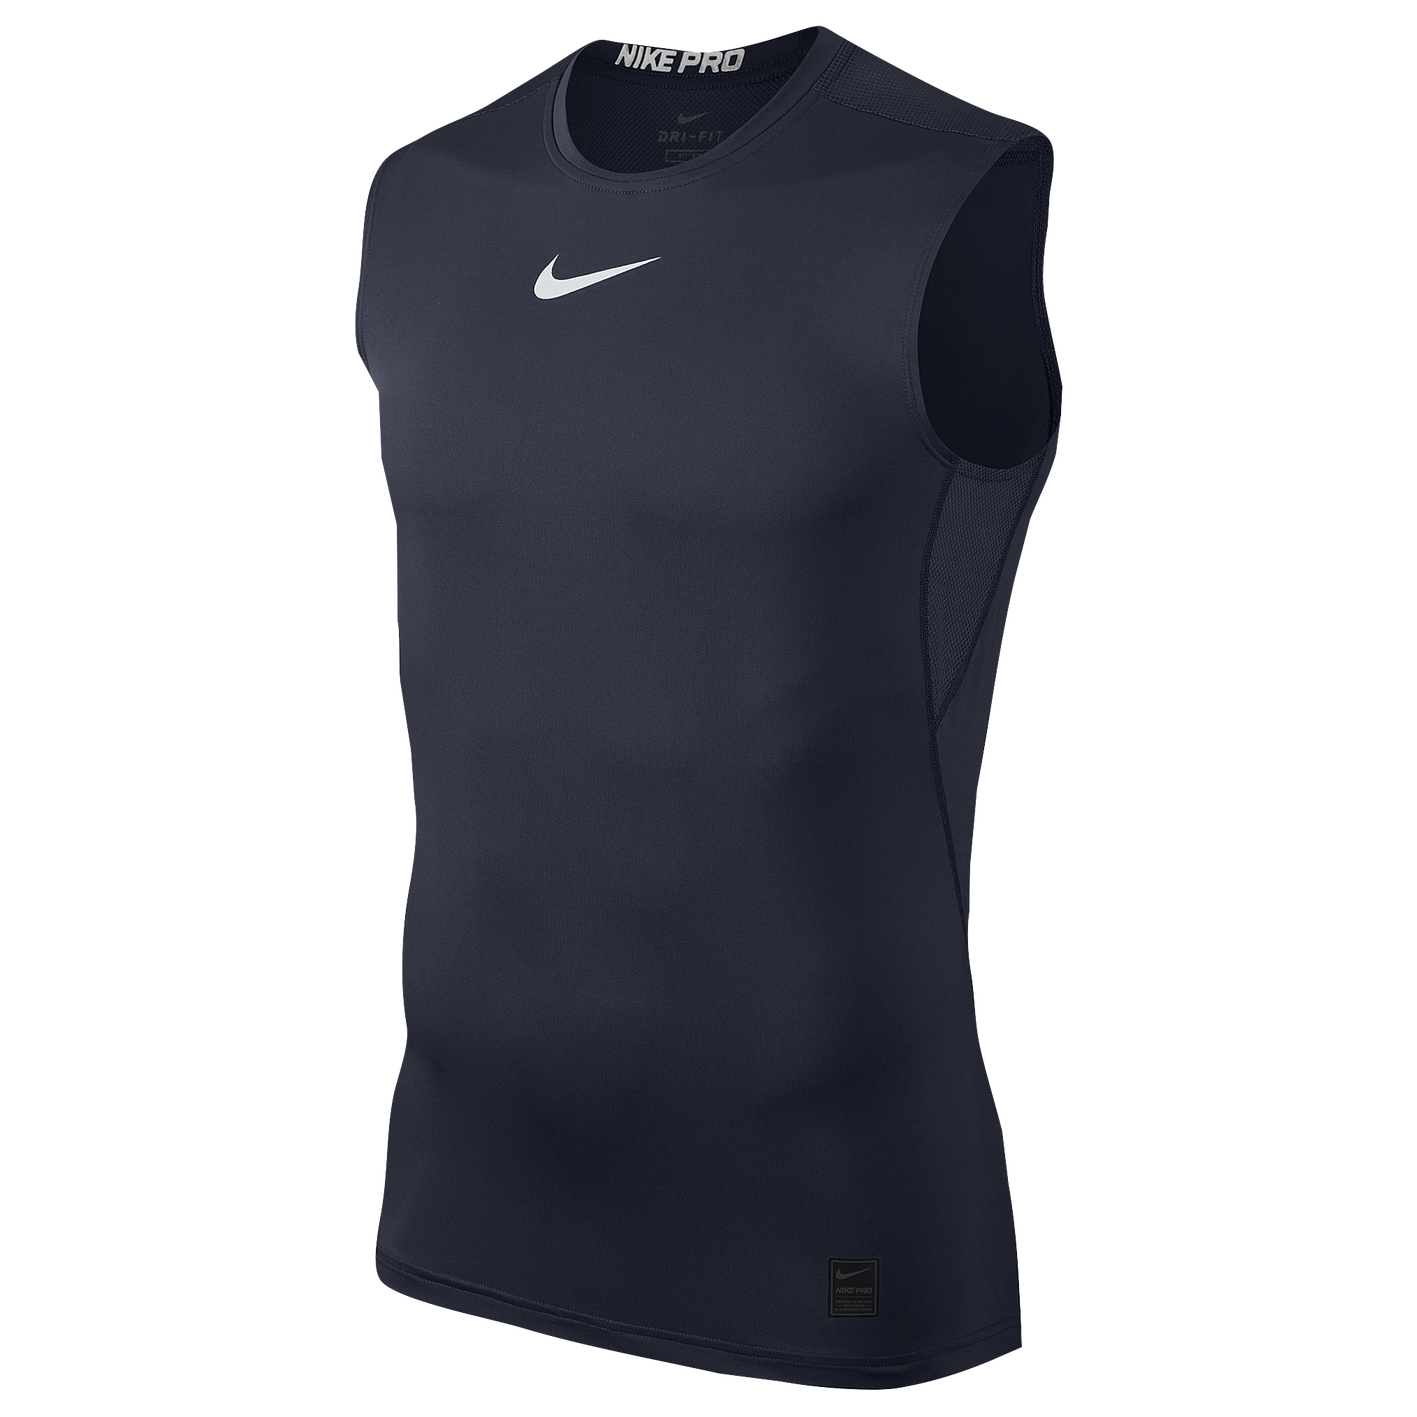 63b7d0d4812a Nike Sleeveless Tee Shirts – EDGE Engineering and Consulting Limited